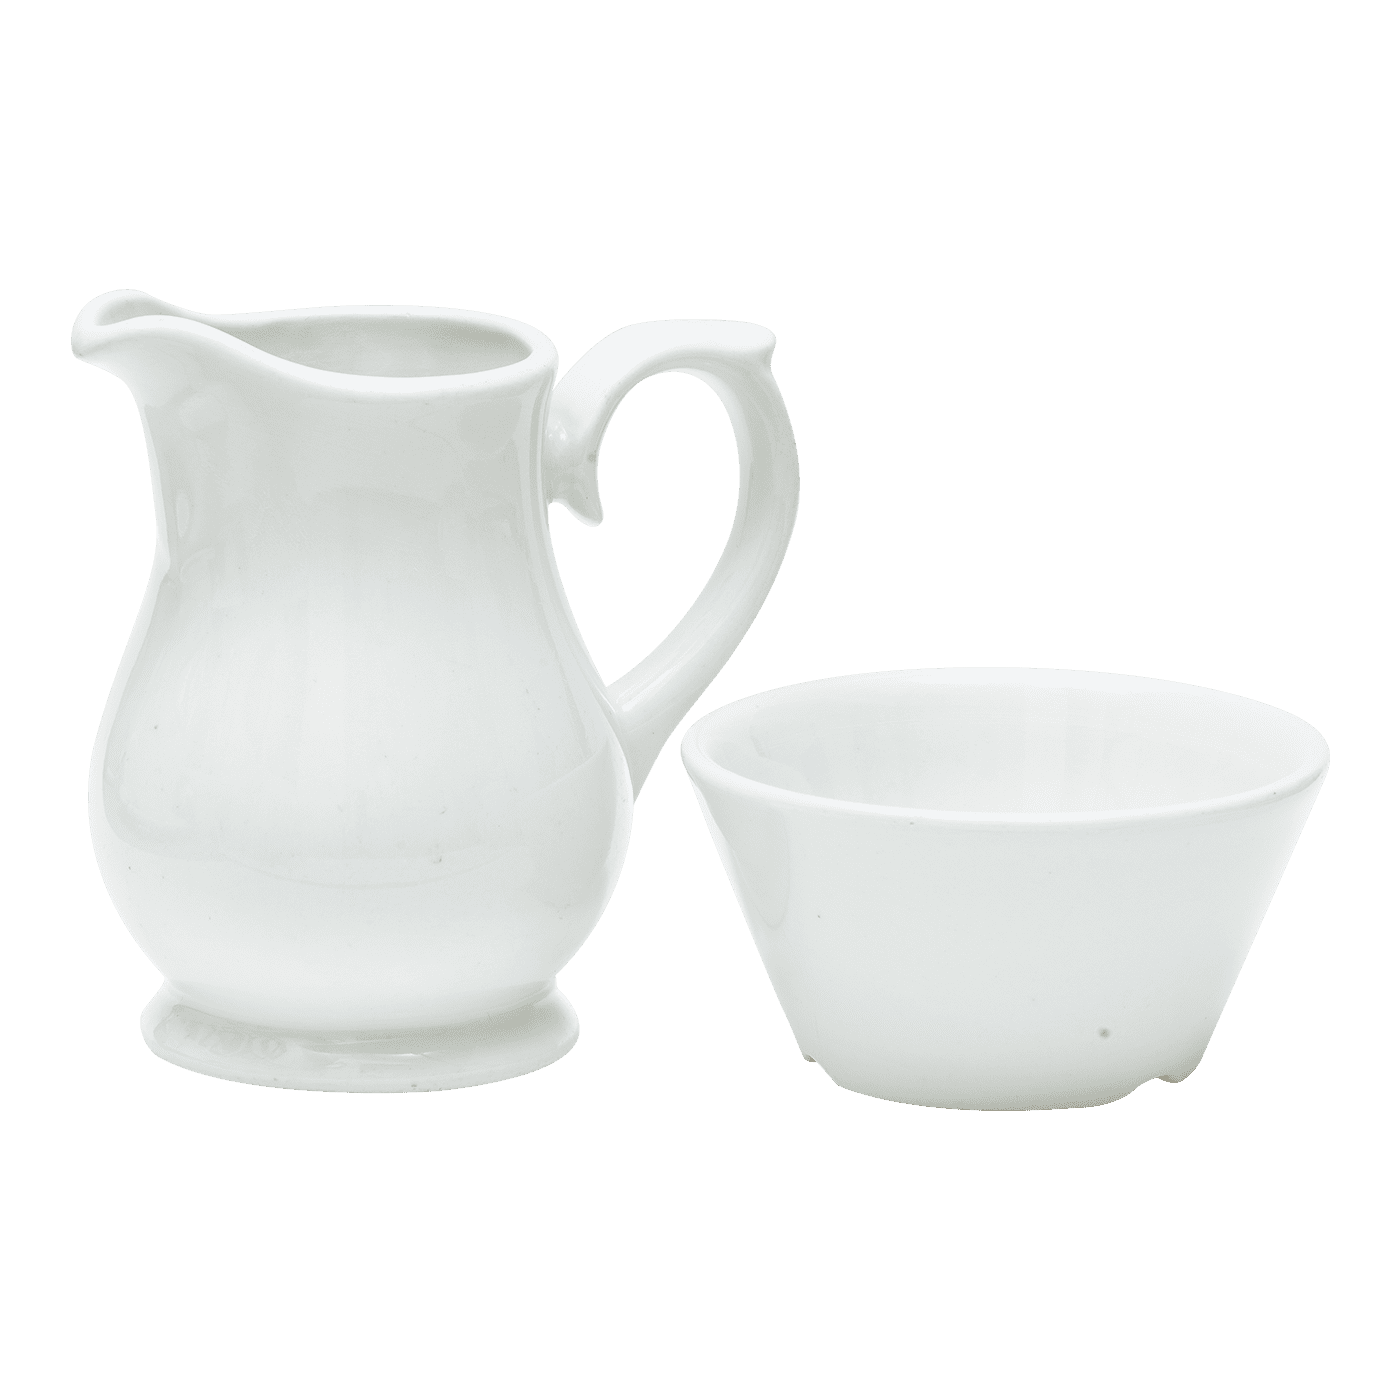 Milk Jug and Sugar Bowl